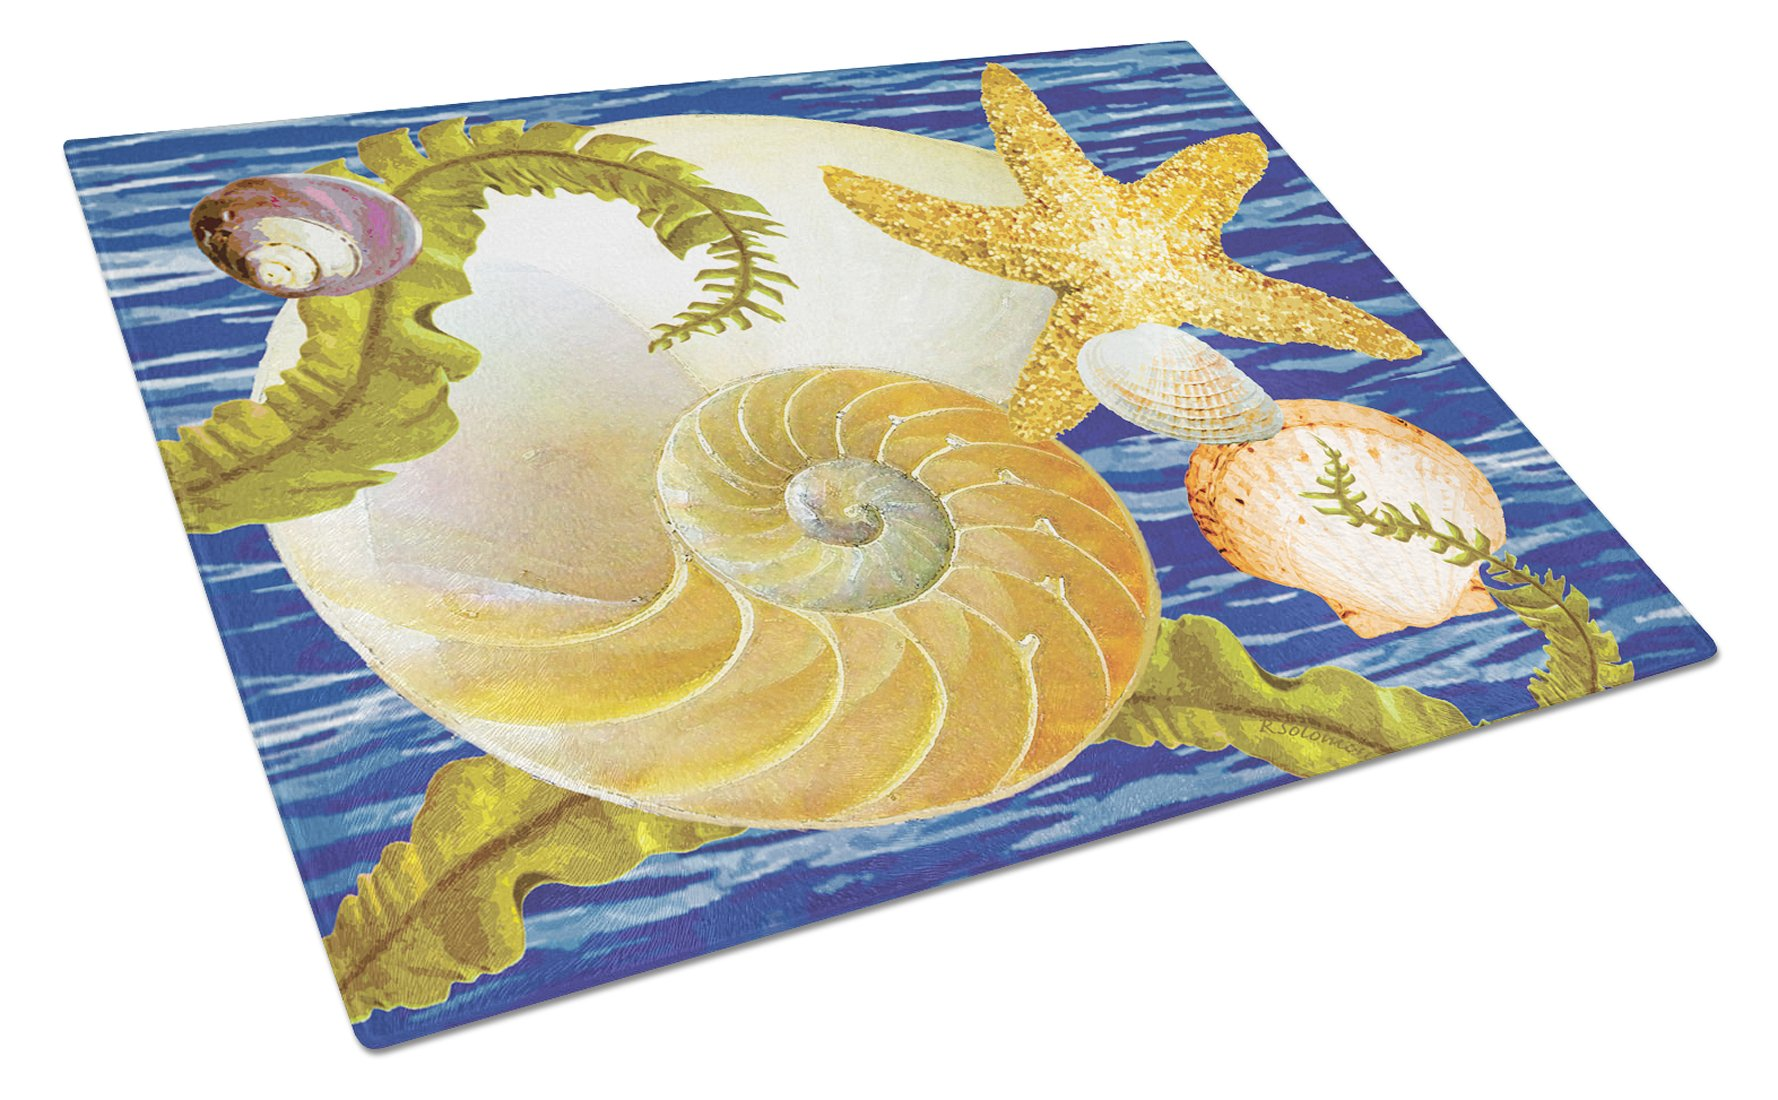 Cut Nautilus And Starfish Glass Cutting Board Large PRS4056LCB by Caroline's Treasures